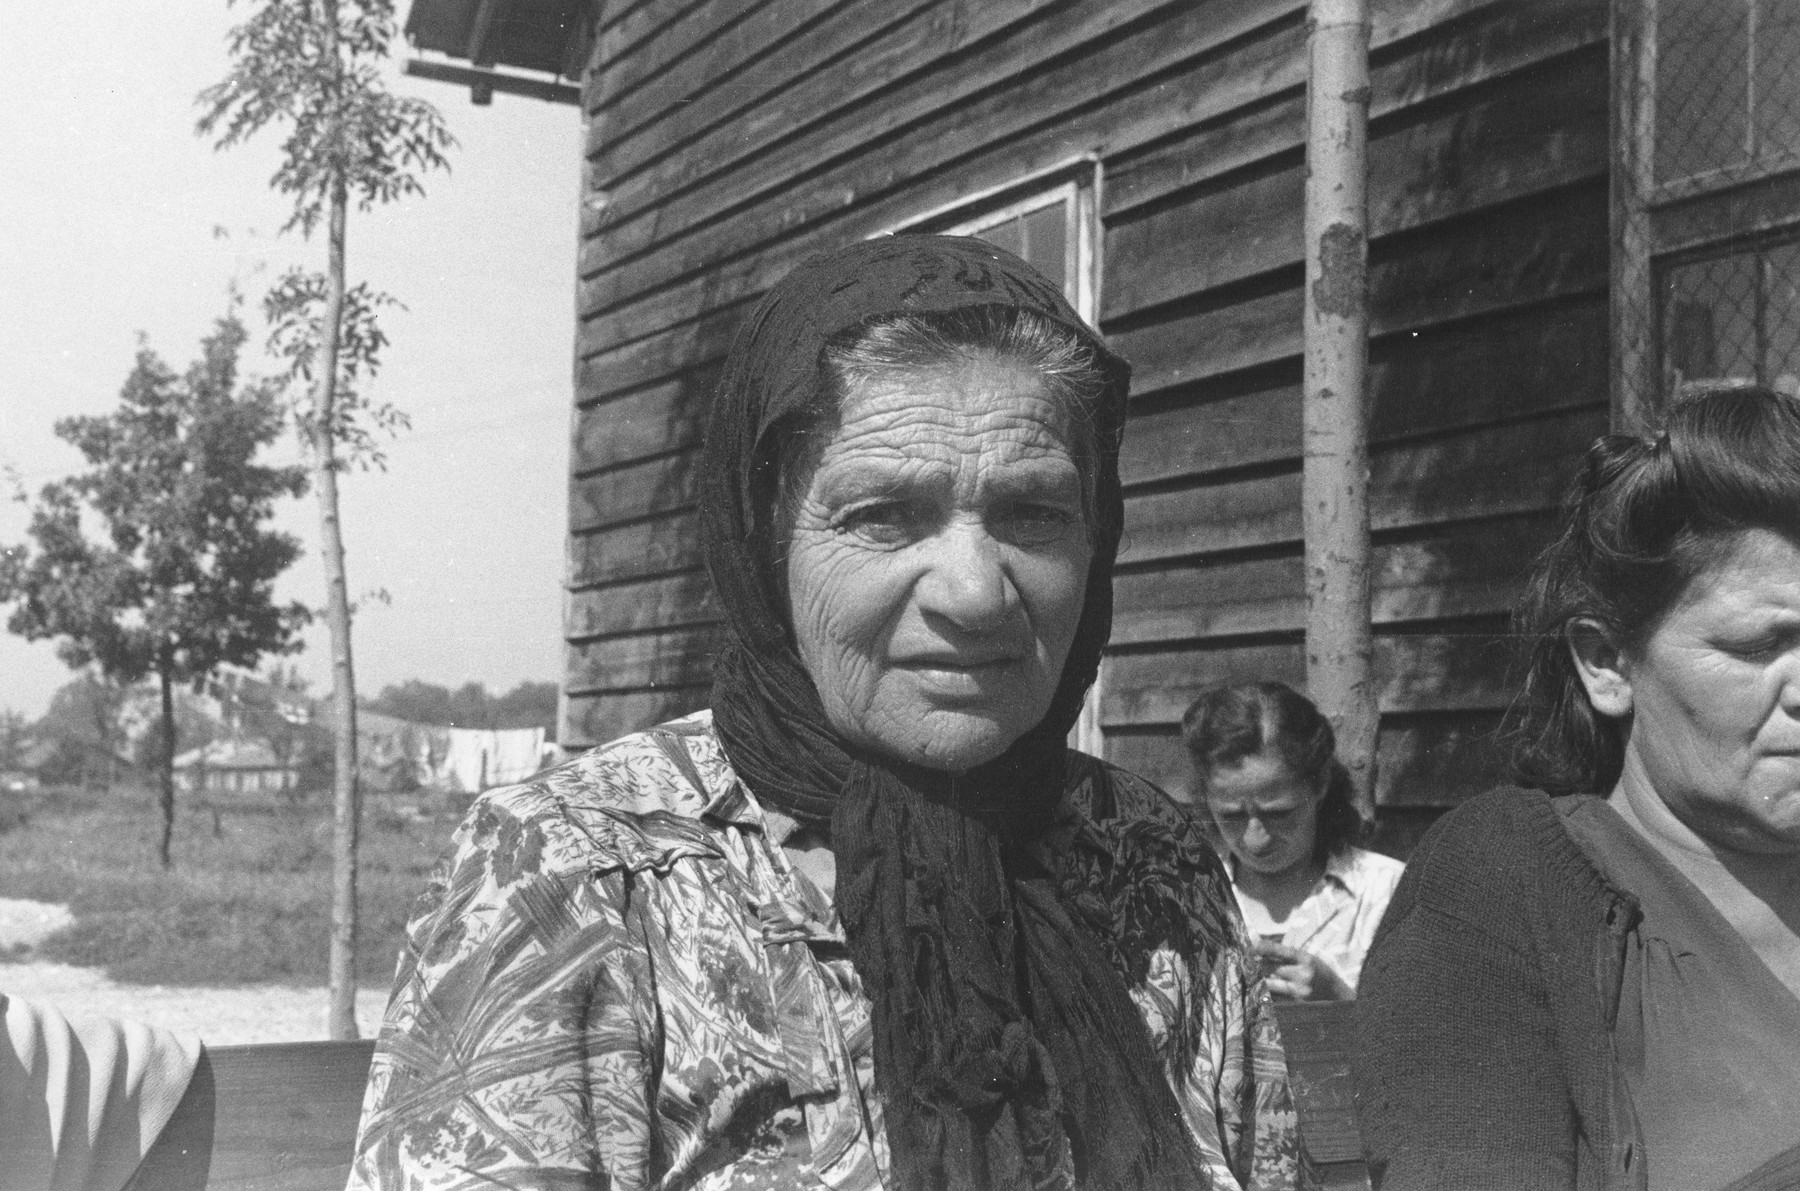 Portrait of an elderly, Jewish DP woman, who is seated outside on a bench among other women who are knitting, at a displaced persons camp in Austria.